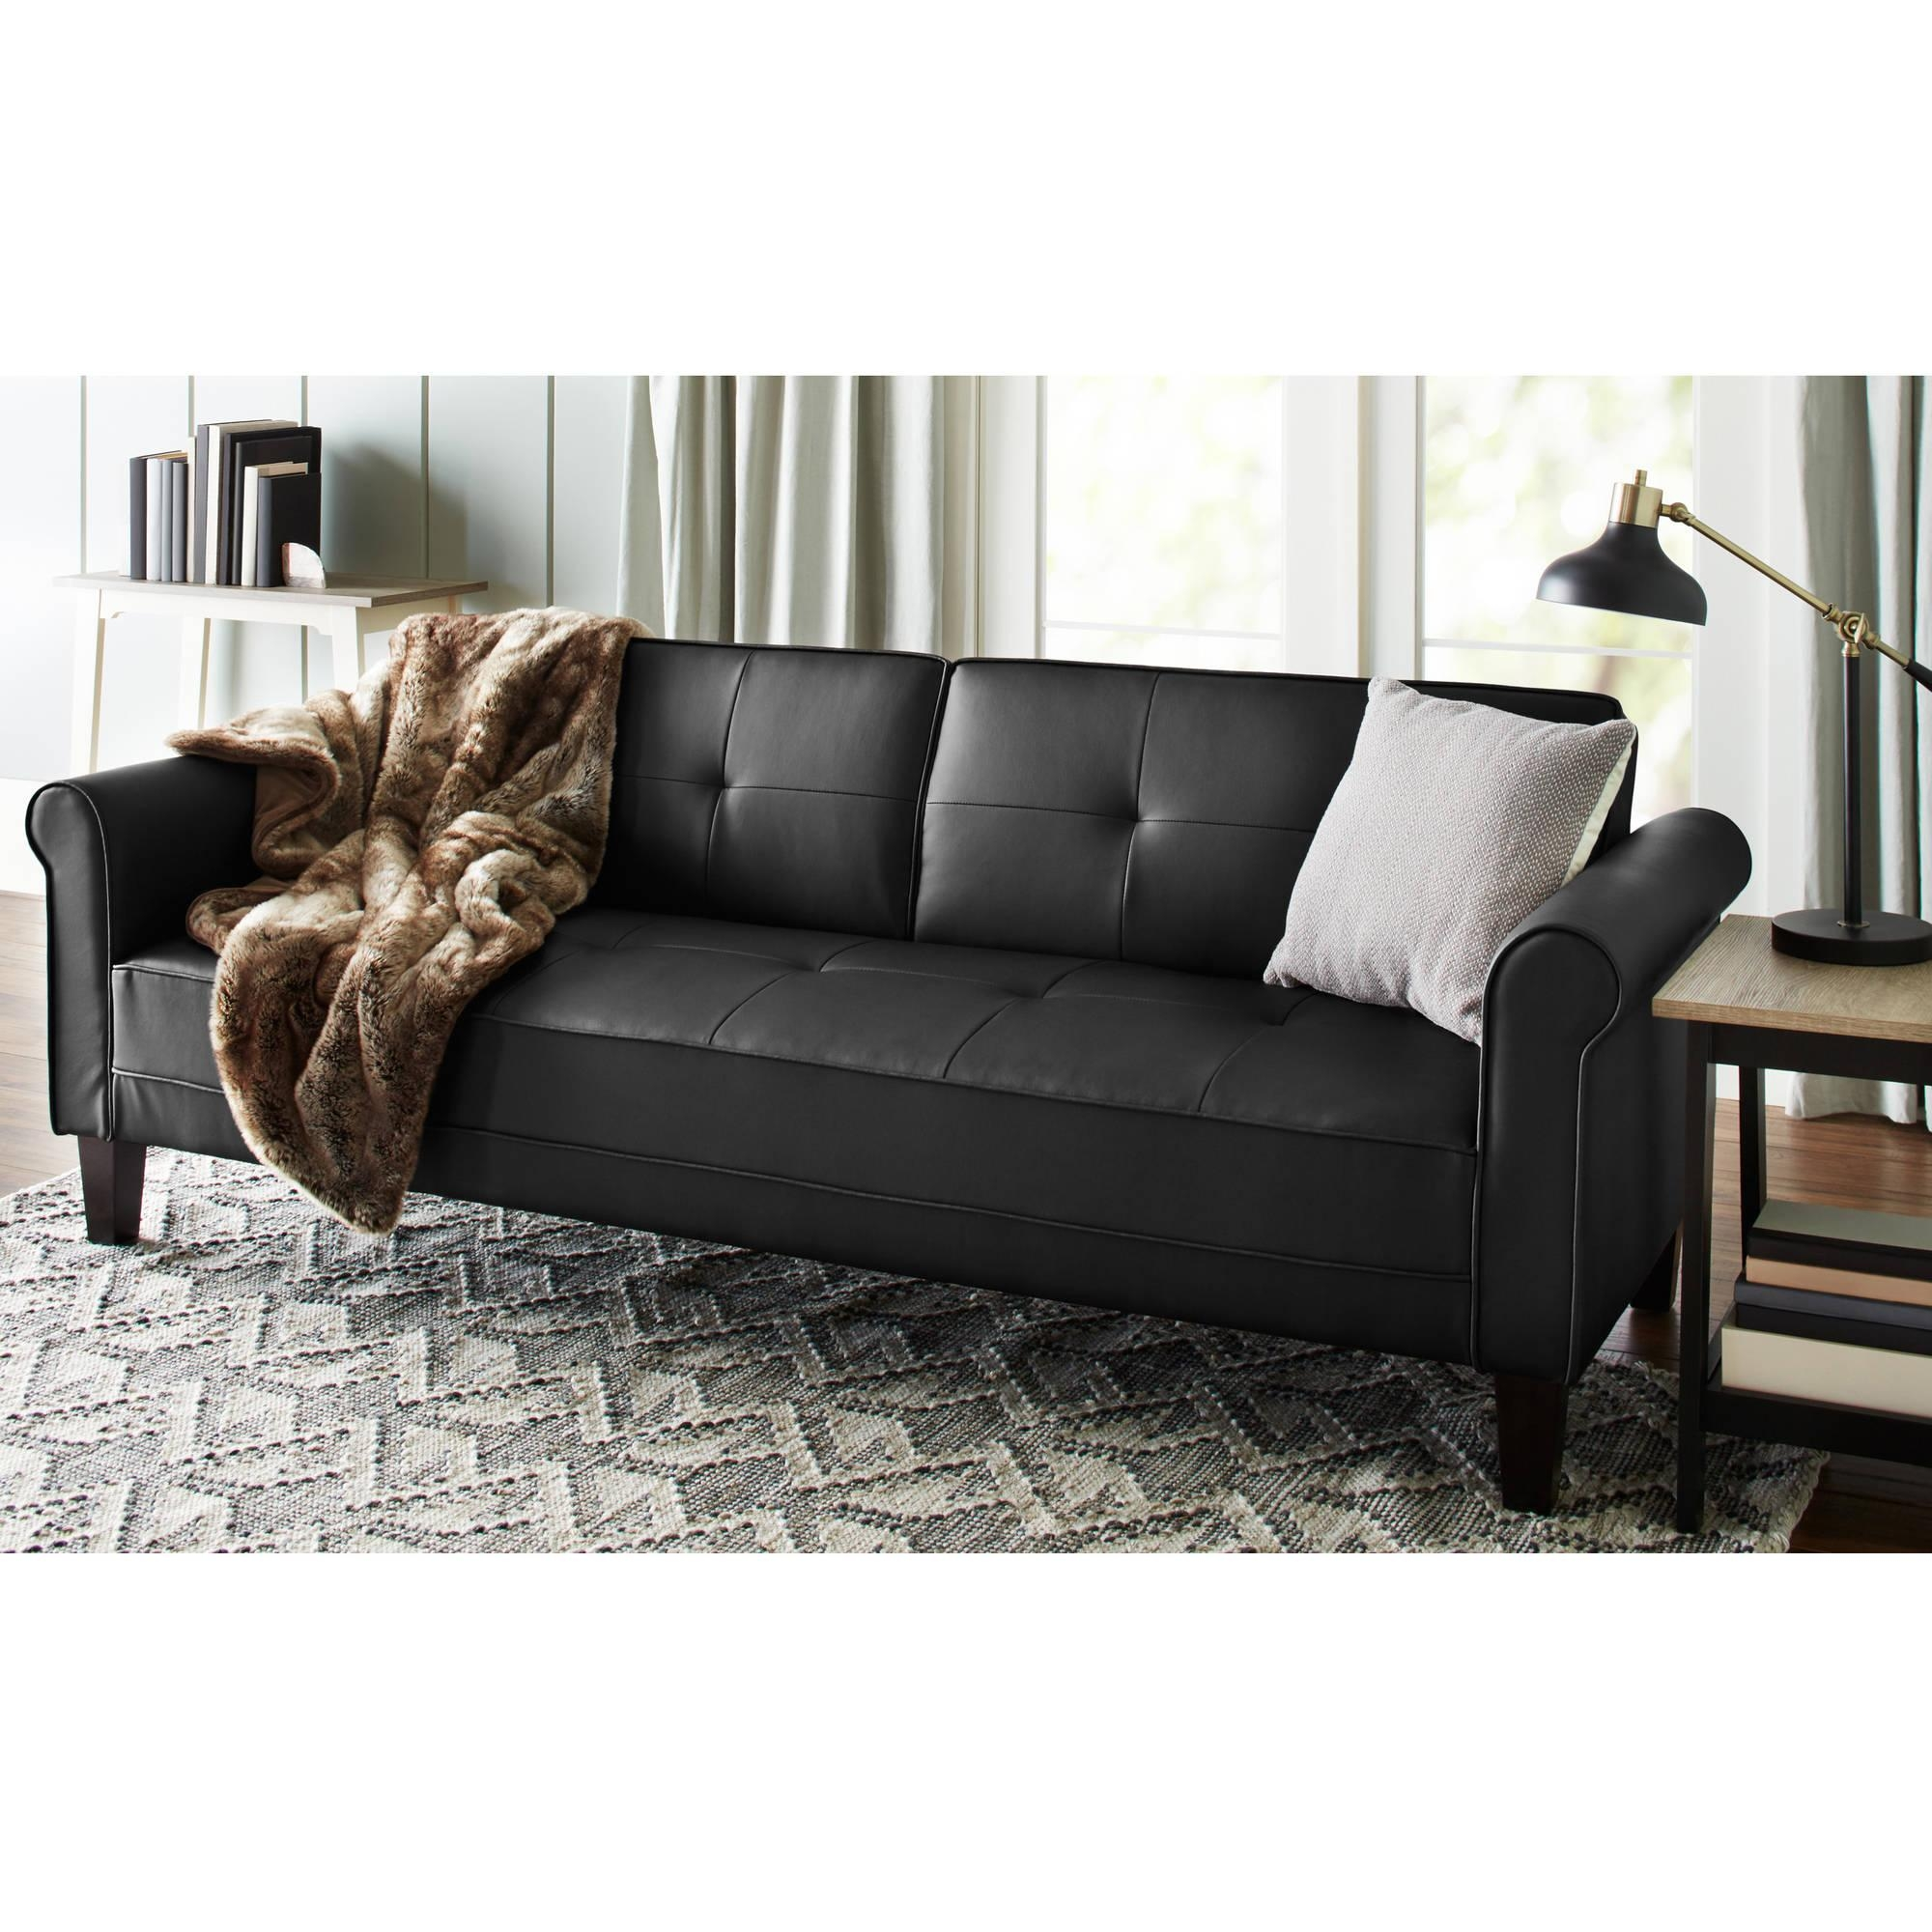 10 Spring Street Ashton Faux Leather Sofa Bed – Walmart In Ashton Sofas (View 3 of 20)